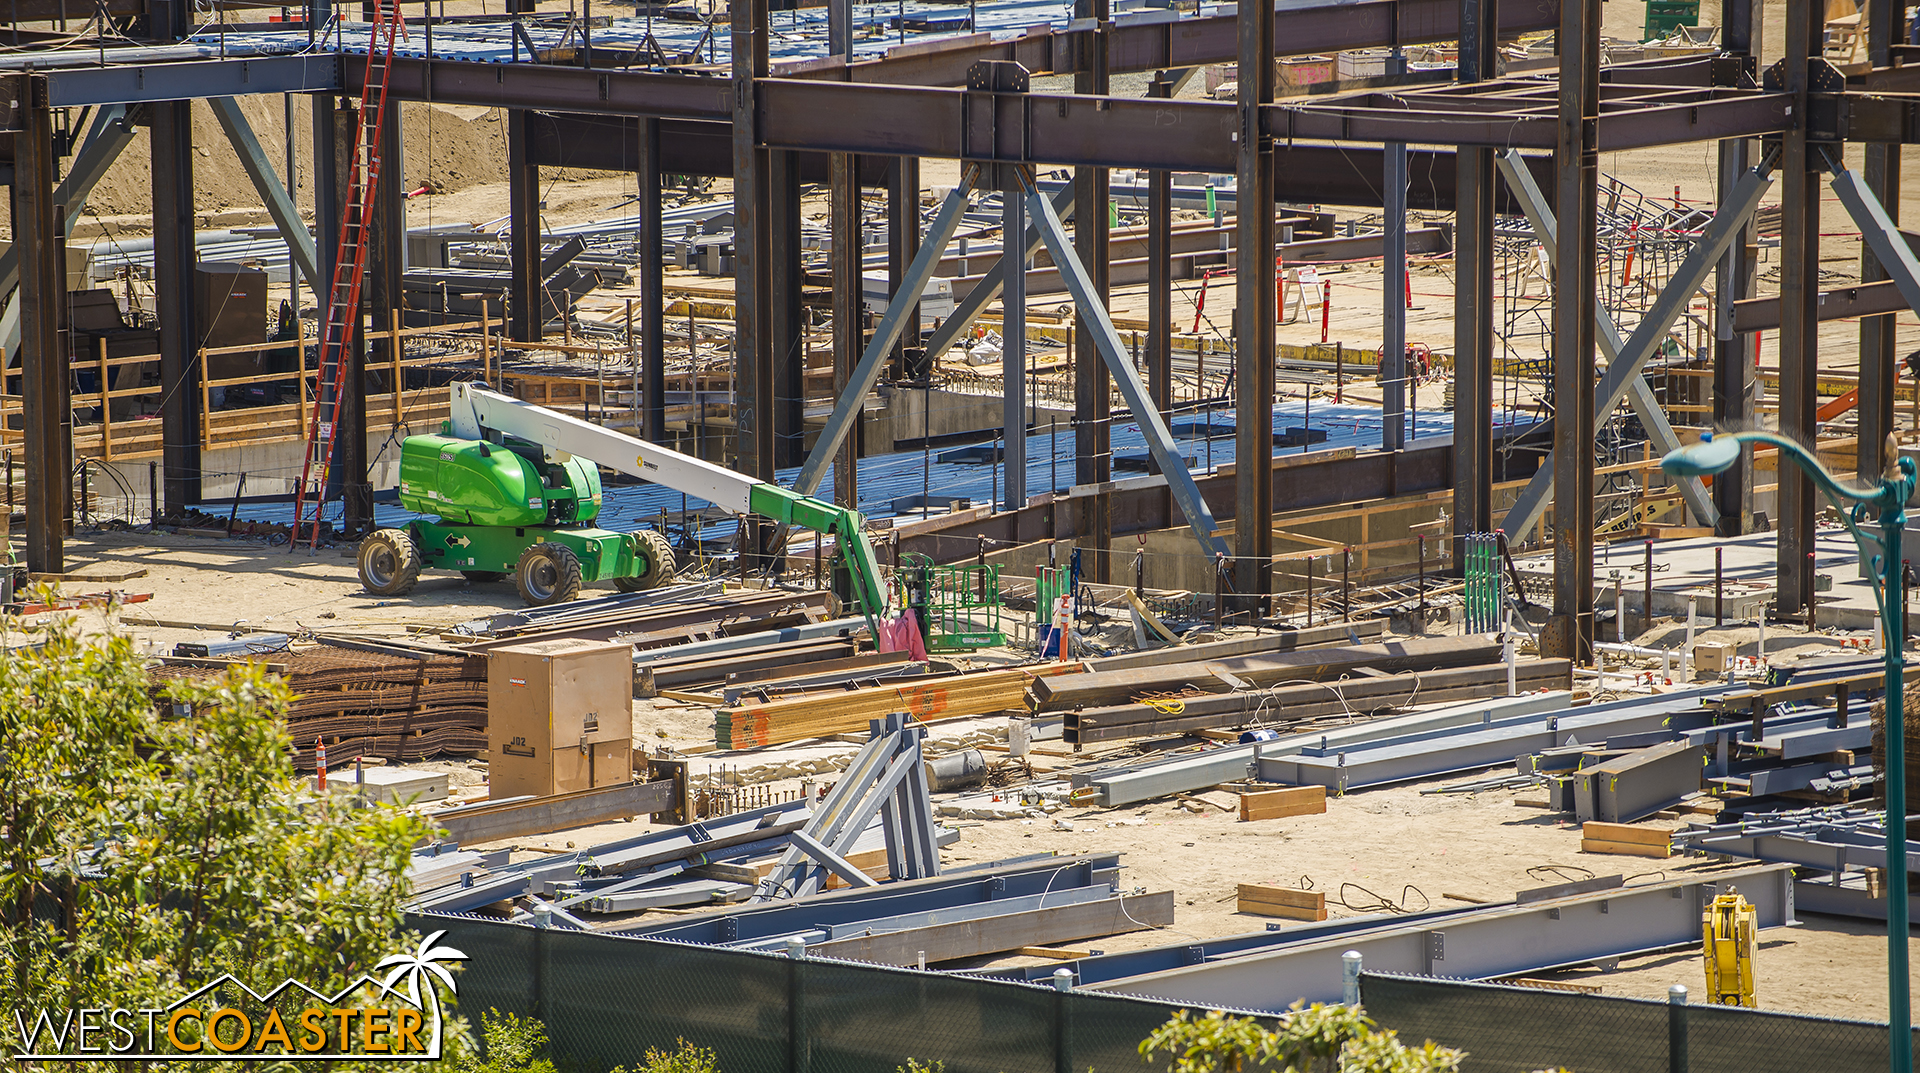 This building shows no signs of slowing down.